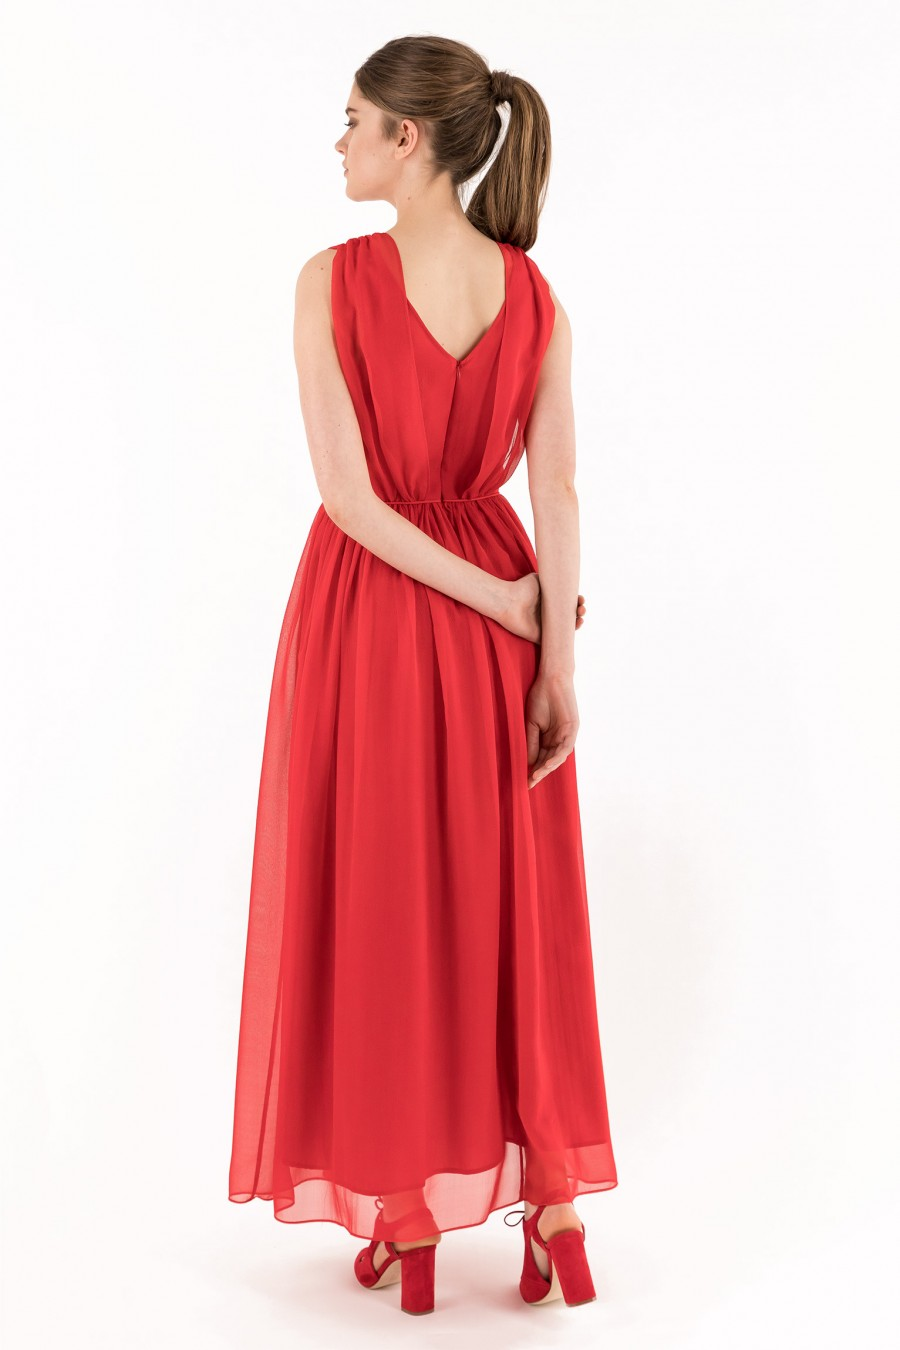 Made in Italy empire dress